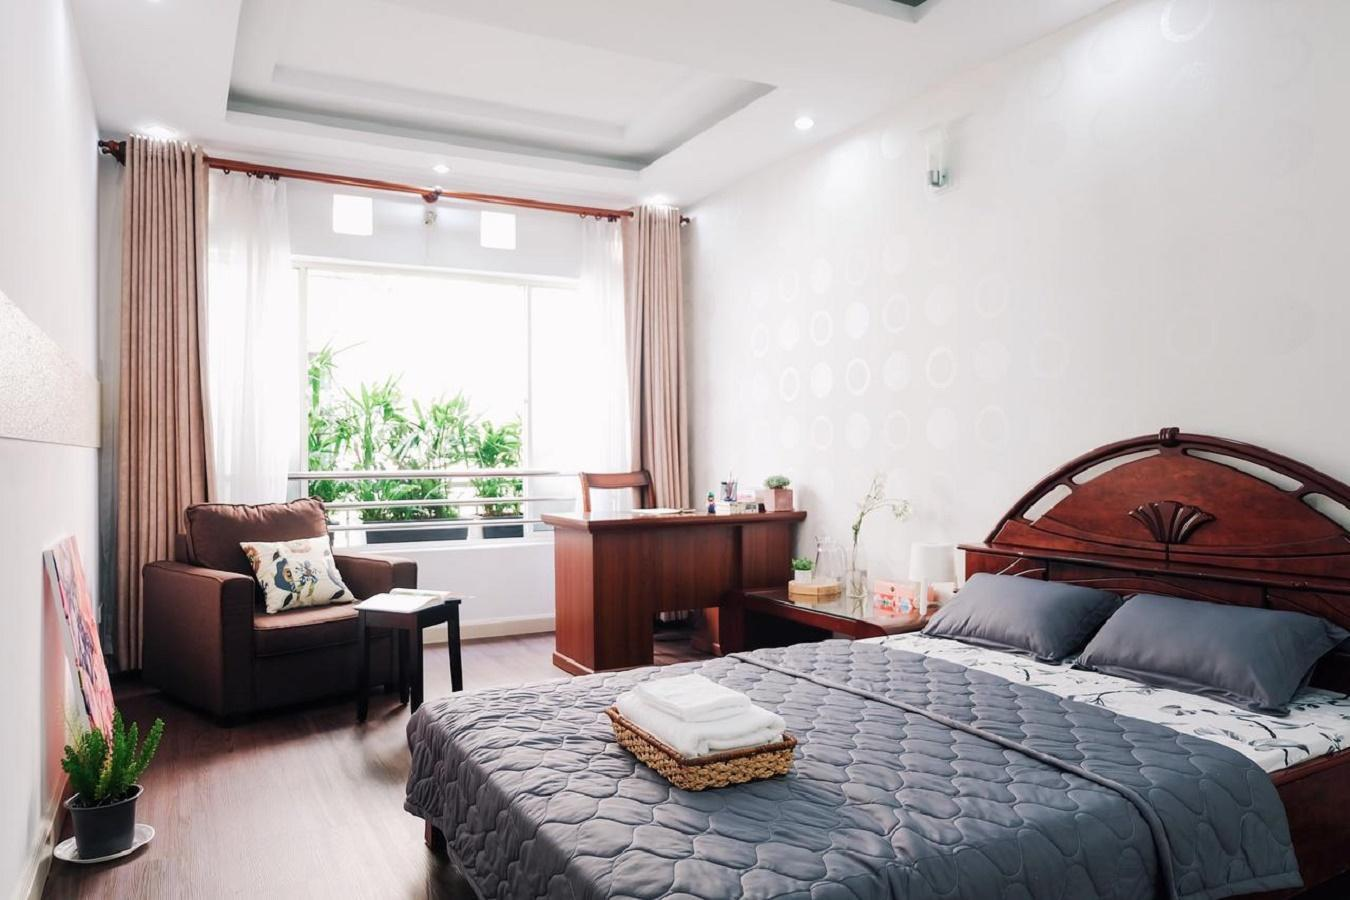 SuAn House- International Share House, Quận 1